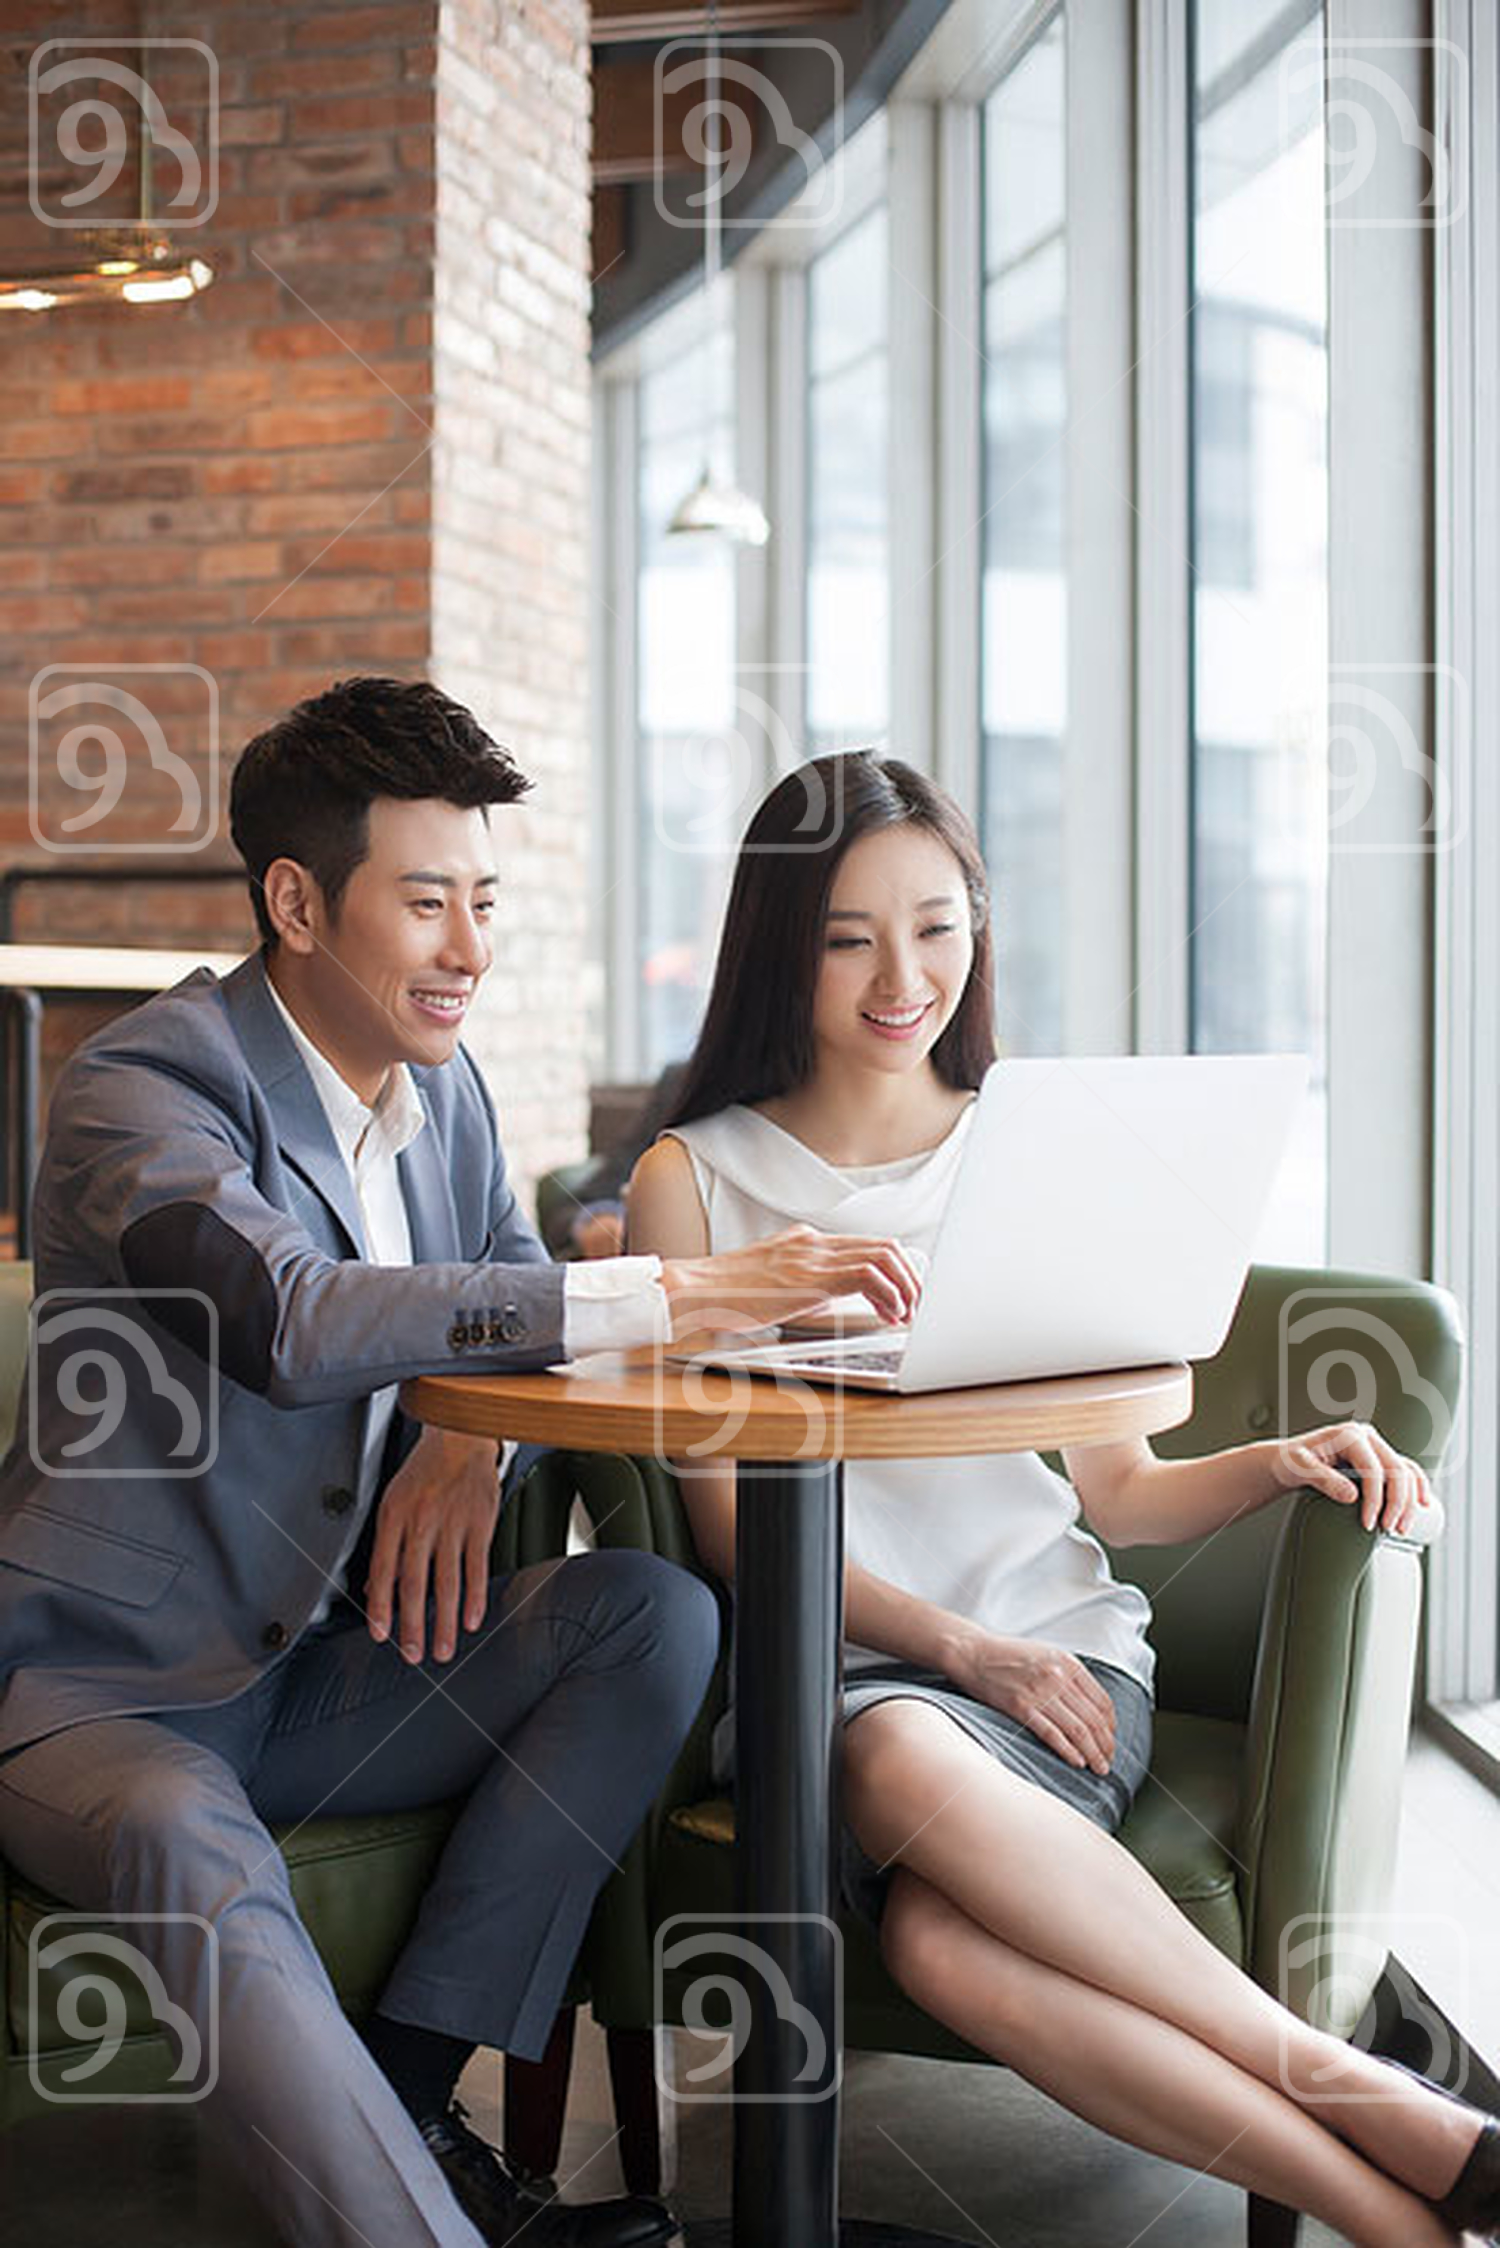 Chinese businesswoman and businessman working with laptop in café